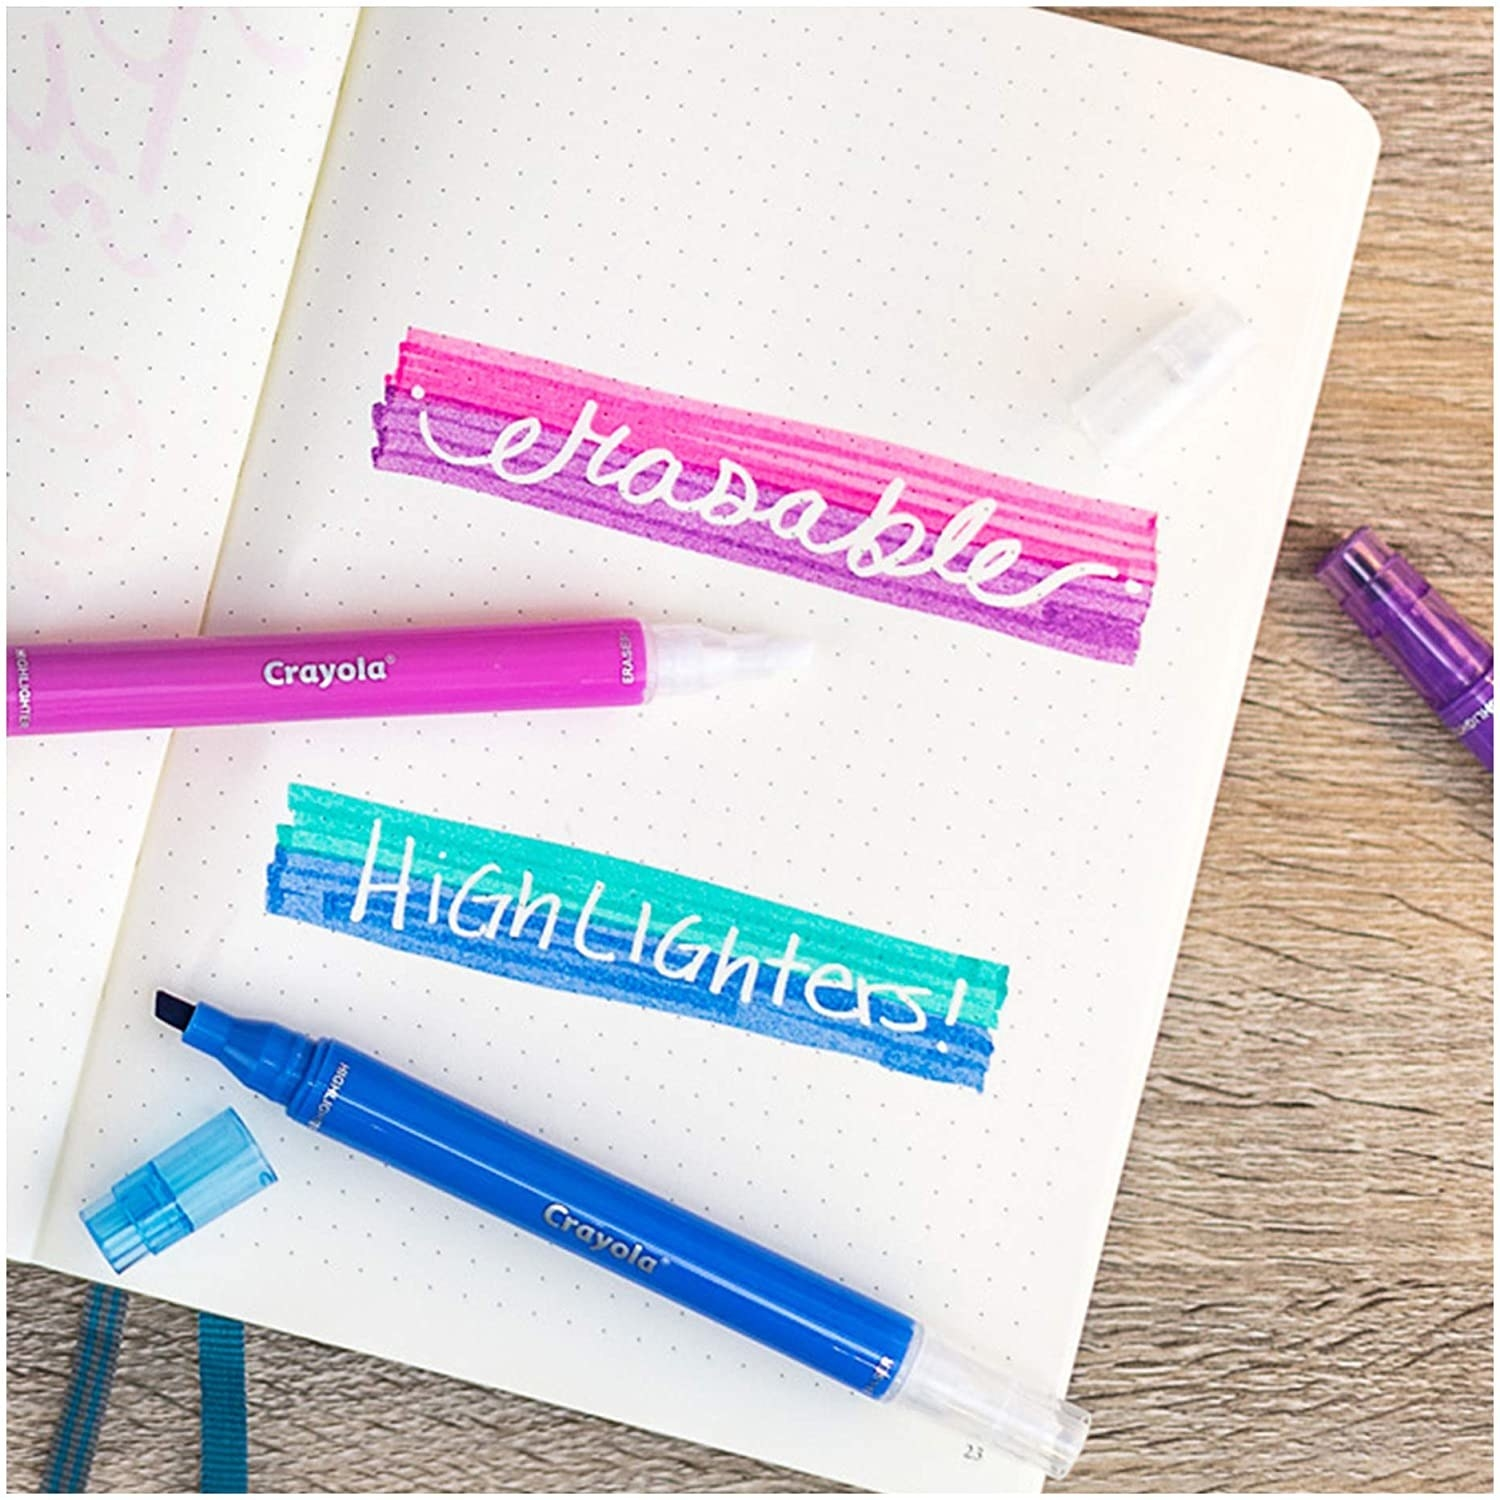 Two erasable highlighters on top of a bullet journal